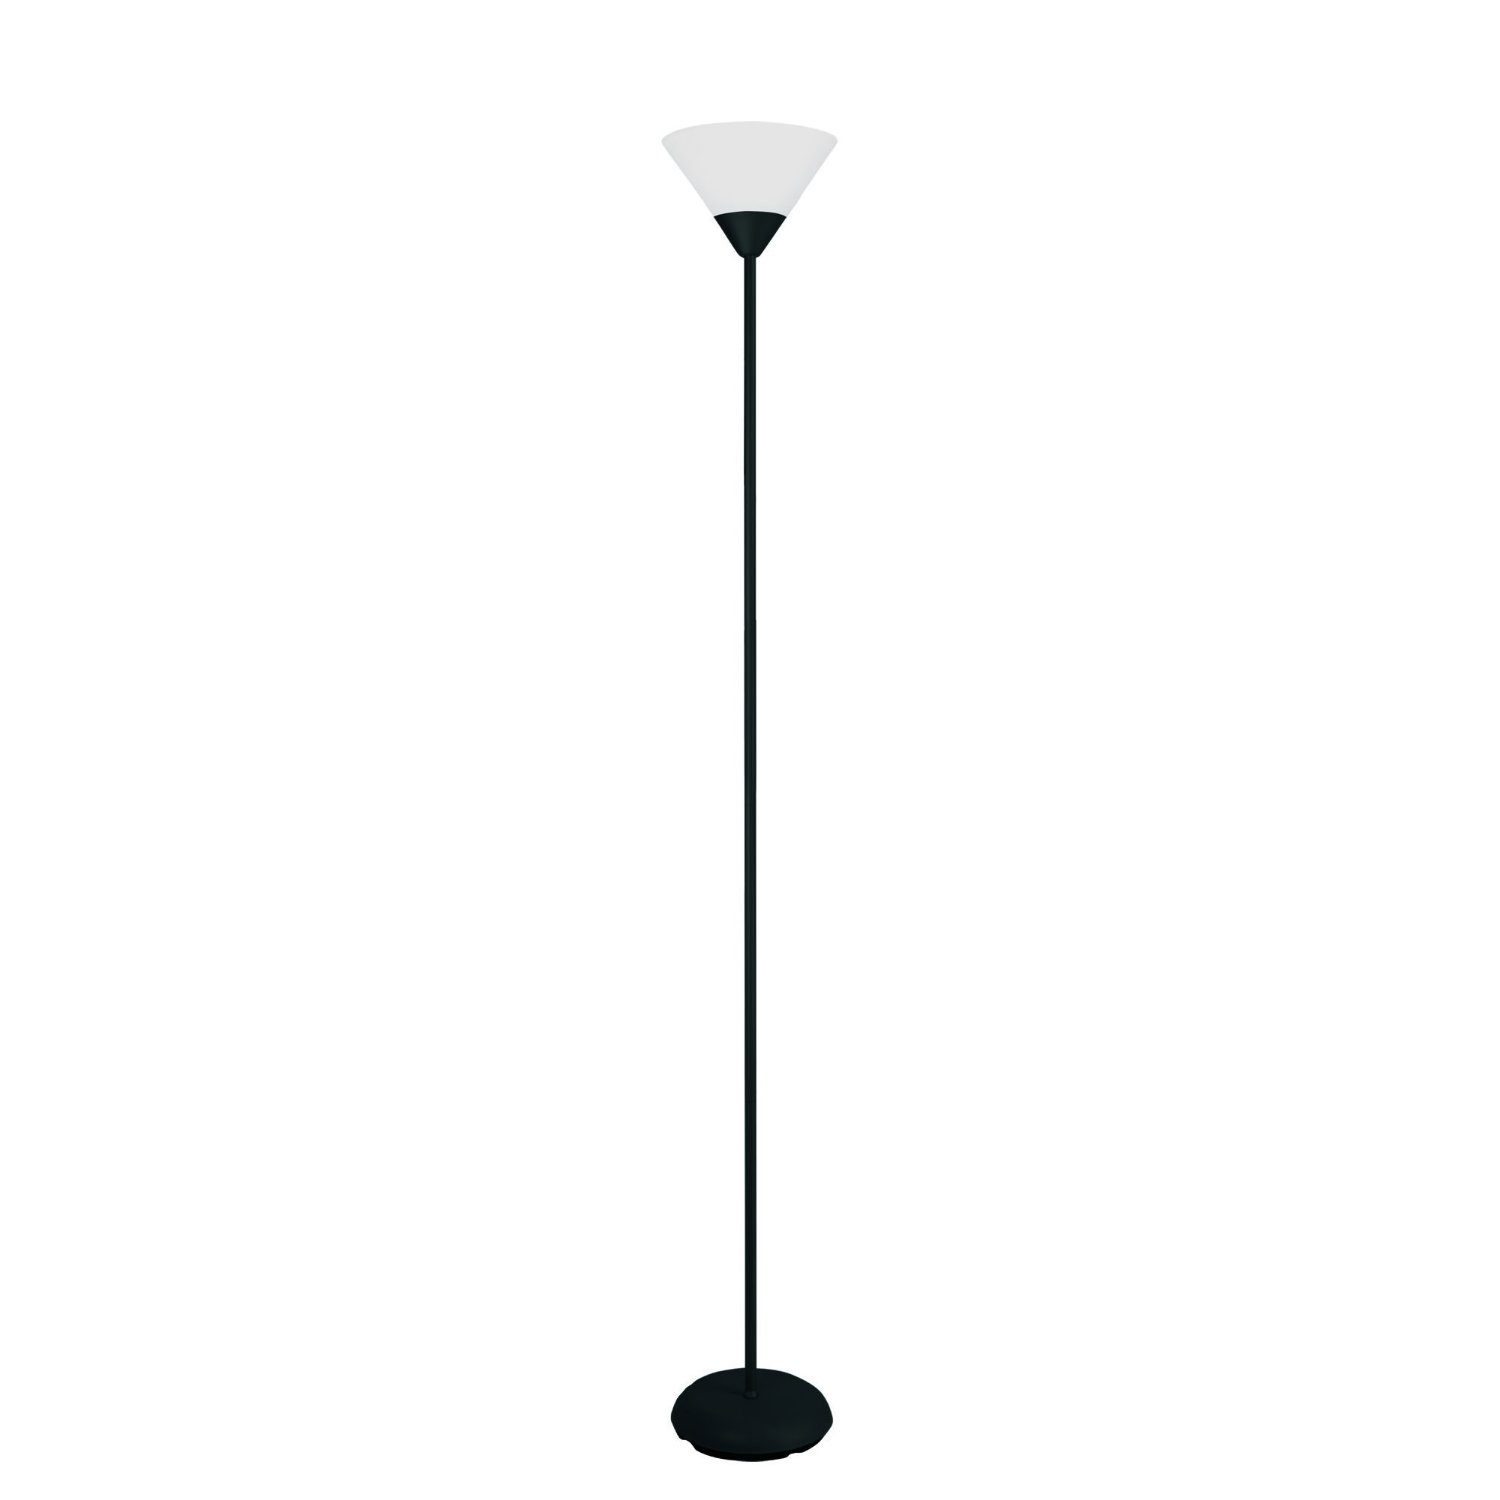 Simple Designs 1 Light Stick Torchiere Floor Lamp